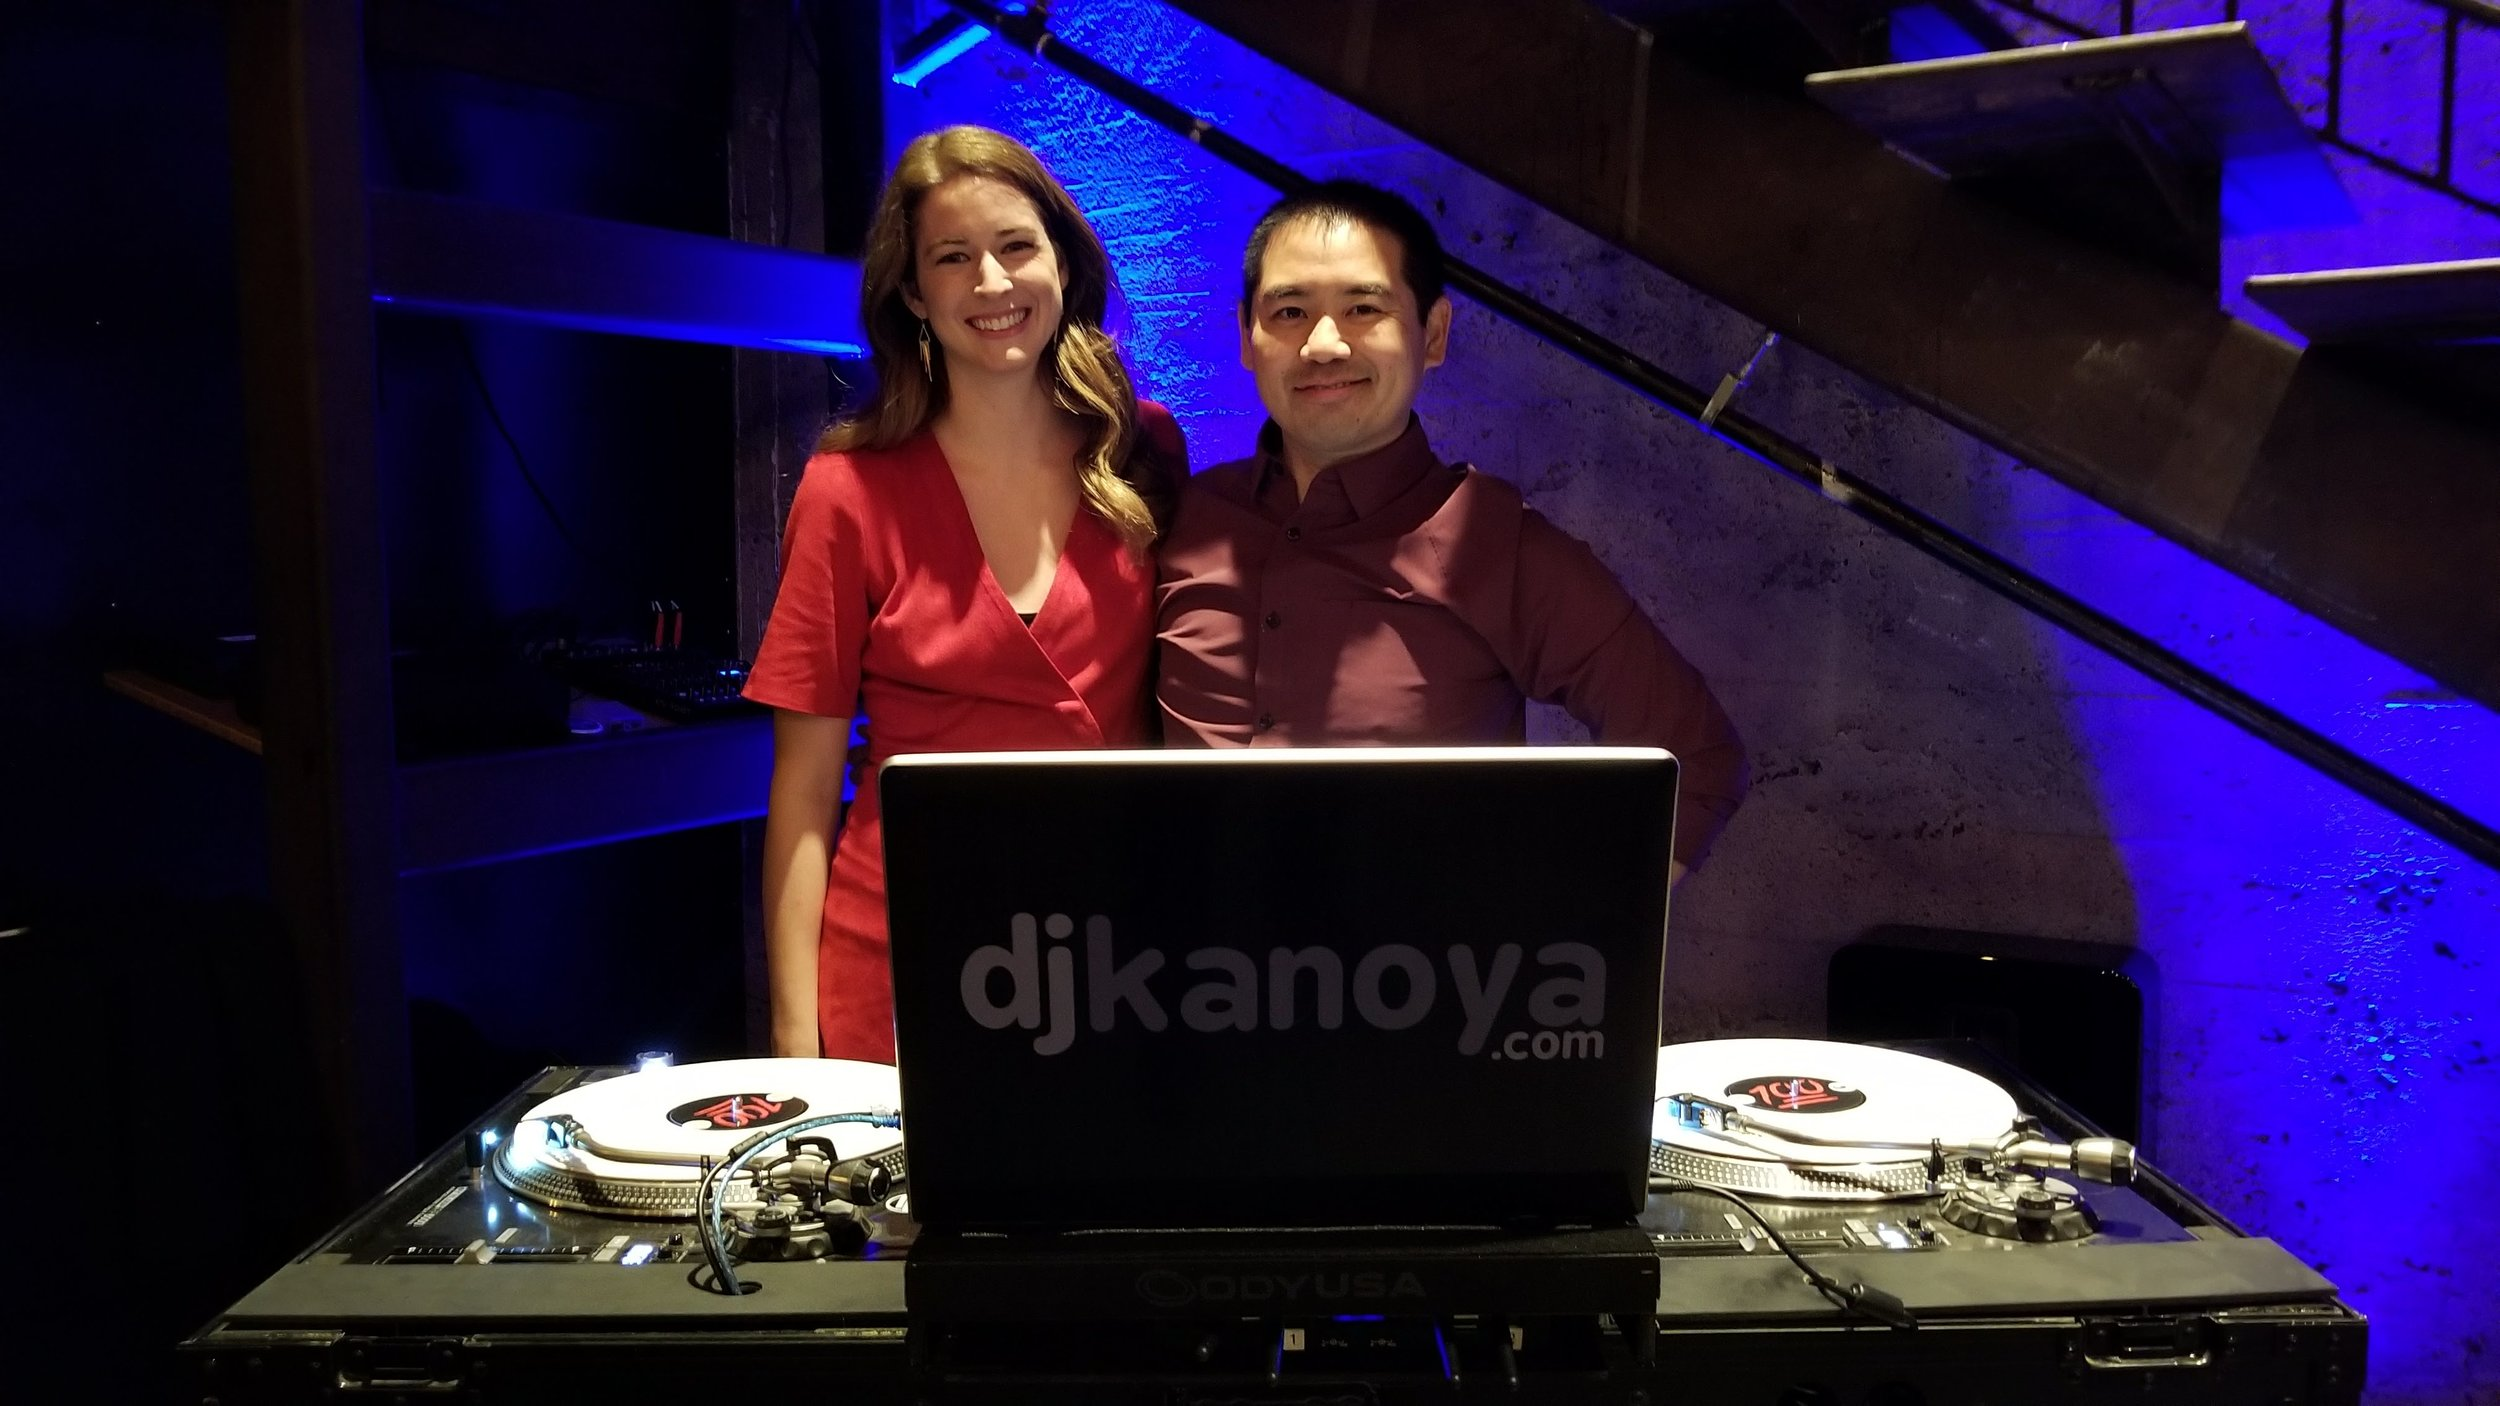 San Diego DJ Justin Kanoya with Dana Jensen, one of the coordinators for the Creative Mornings San Diego third birthday party at Luce Loft.